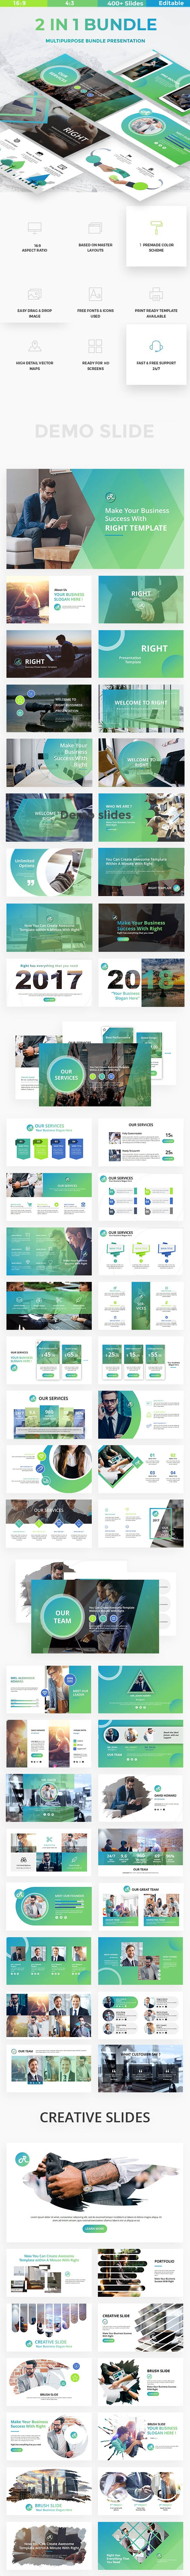 2 in 1 Bundle Business Powerpoint Template - Business PowerPoint Templates